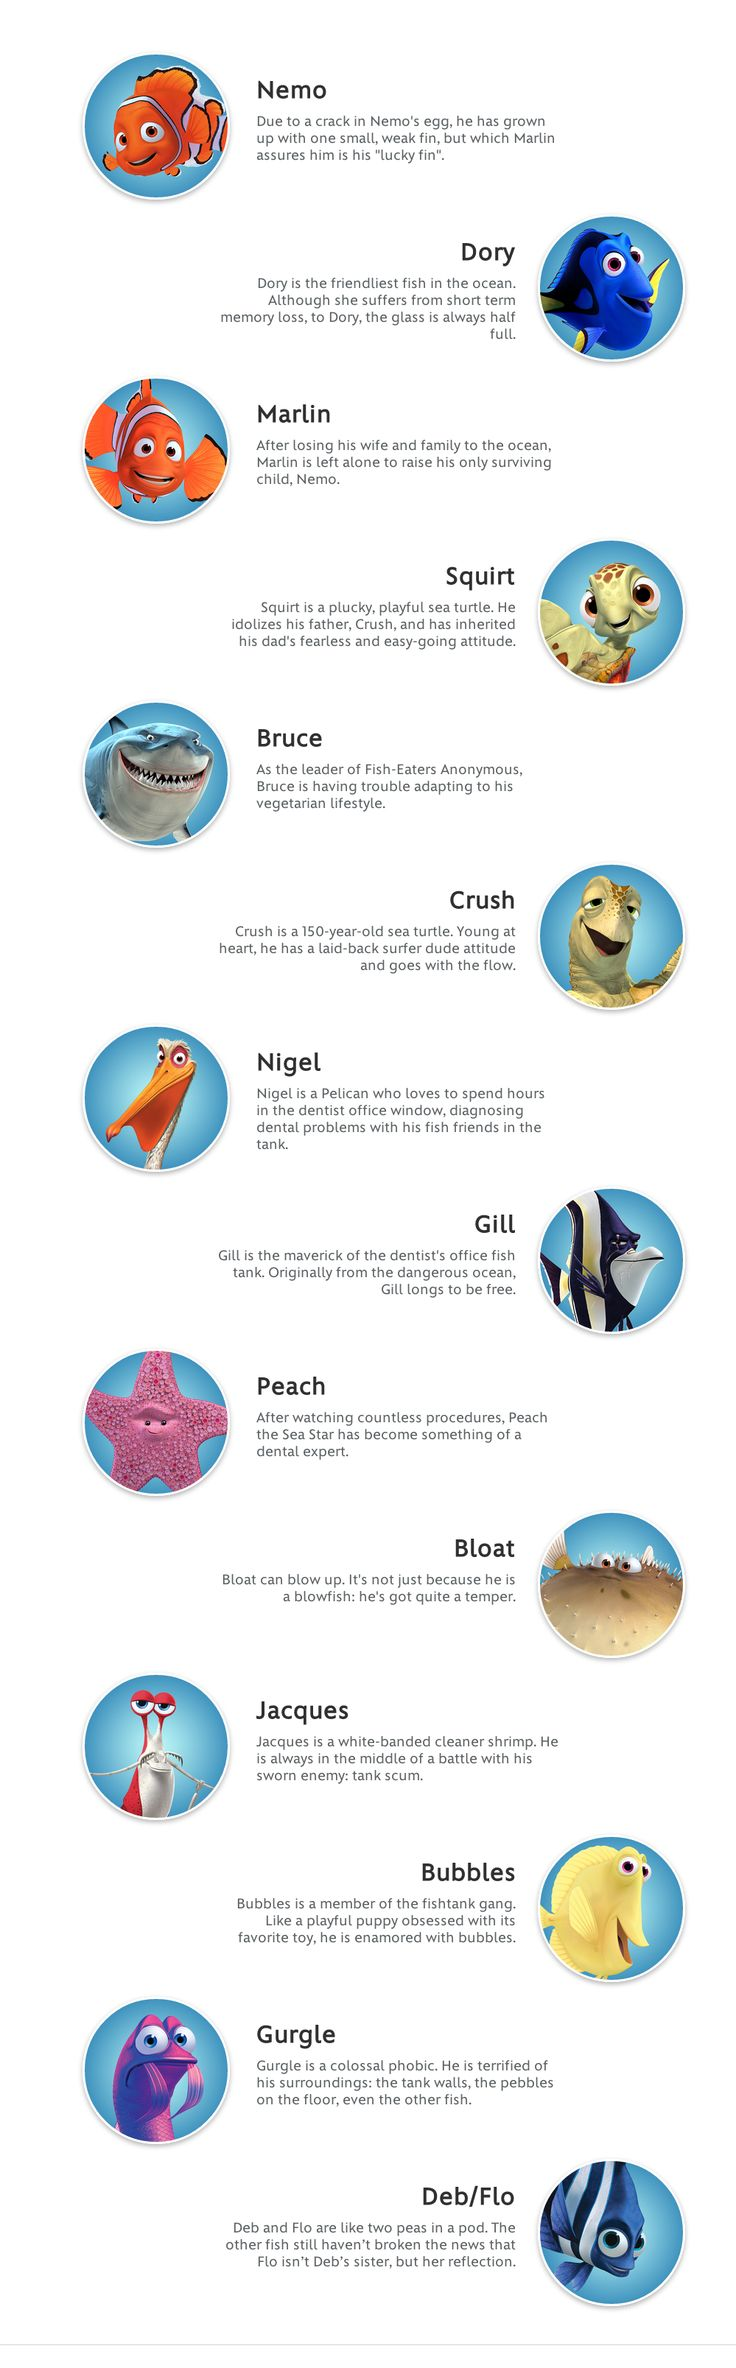 Finding Nemo, descriptions by disney.com, © Disney/Pixar, all rights reserved, for more information click to go to disney.com